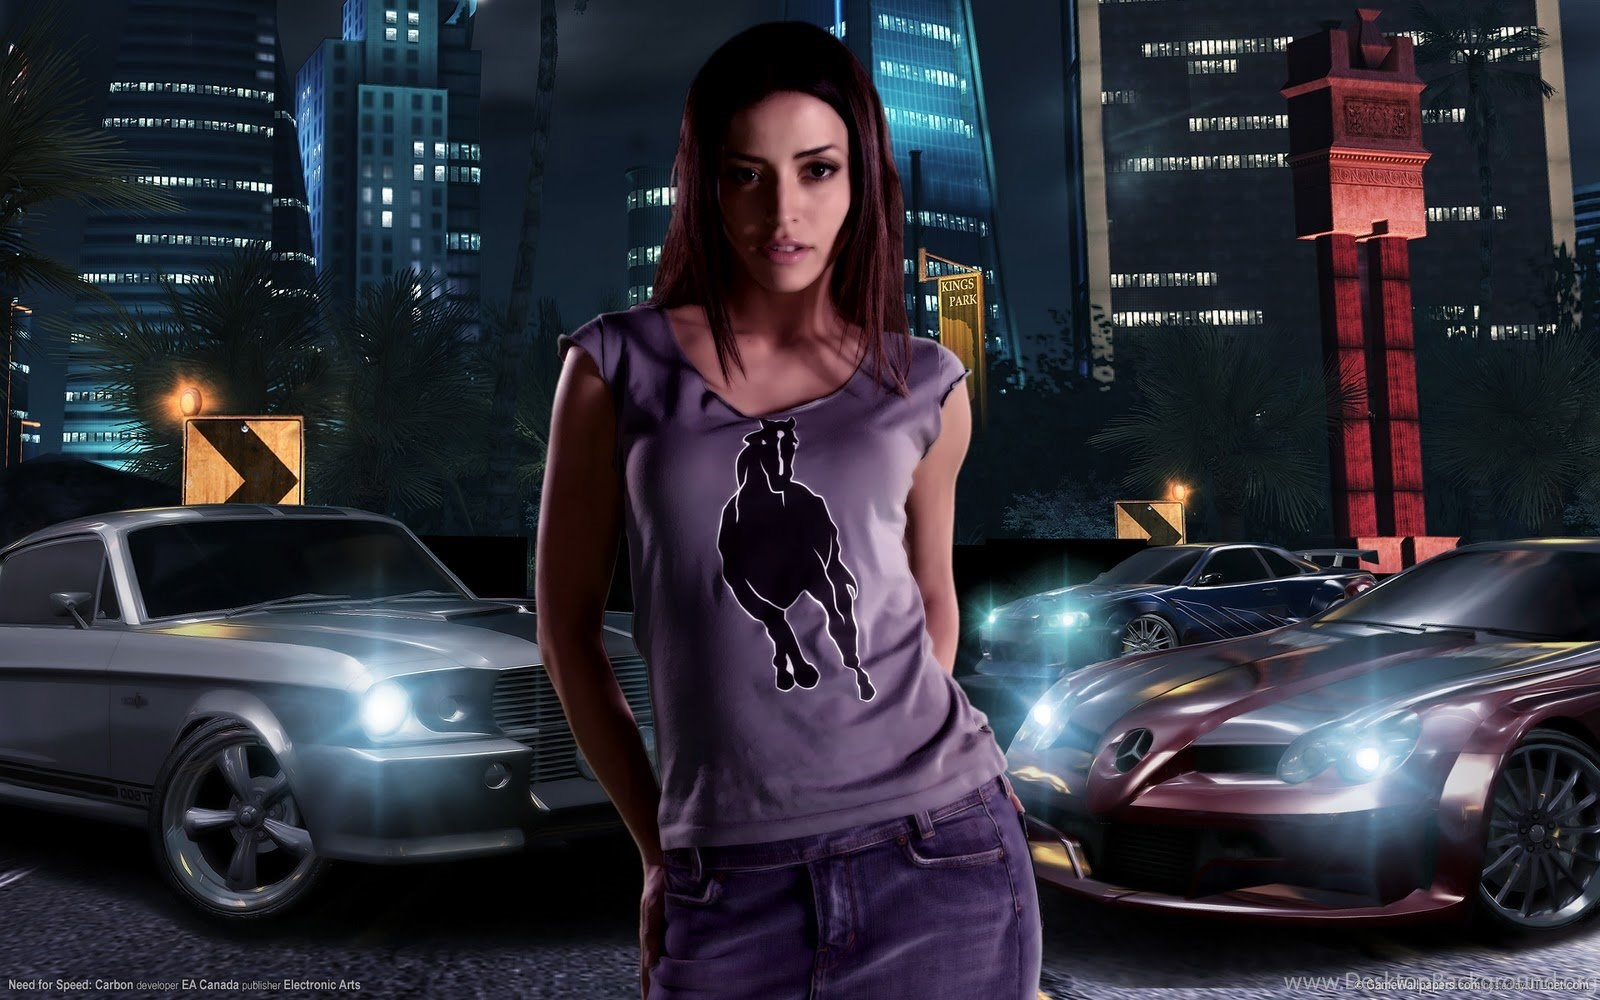 Cars Wallpaper Hot Cars Wallpapers With Girls Desktop Background